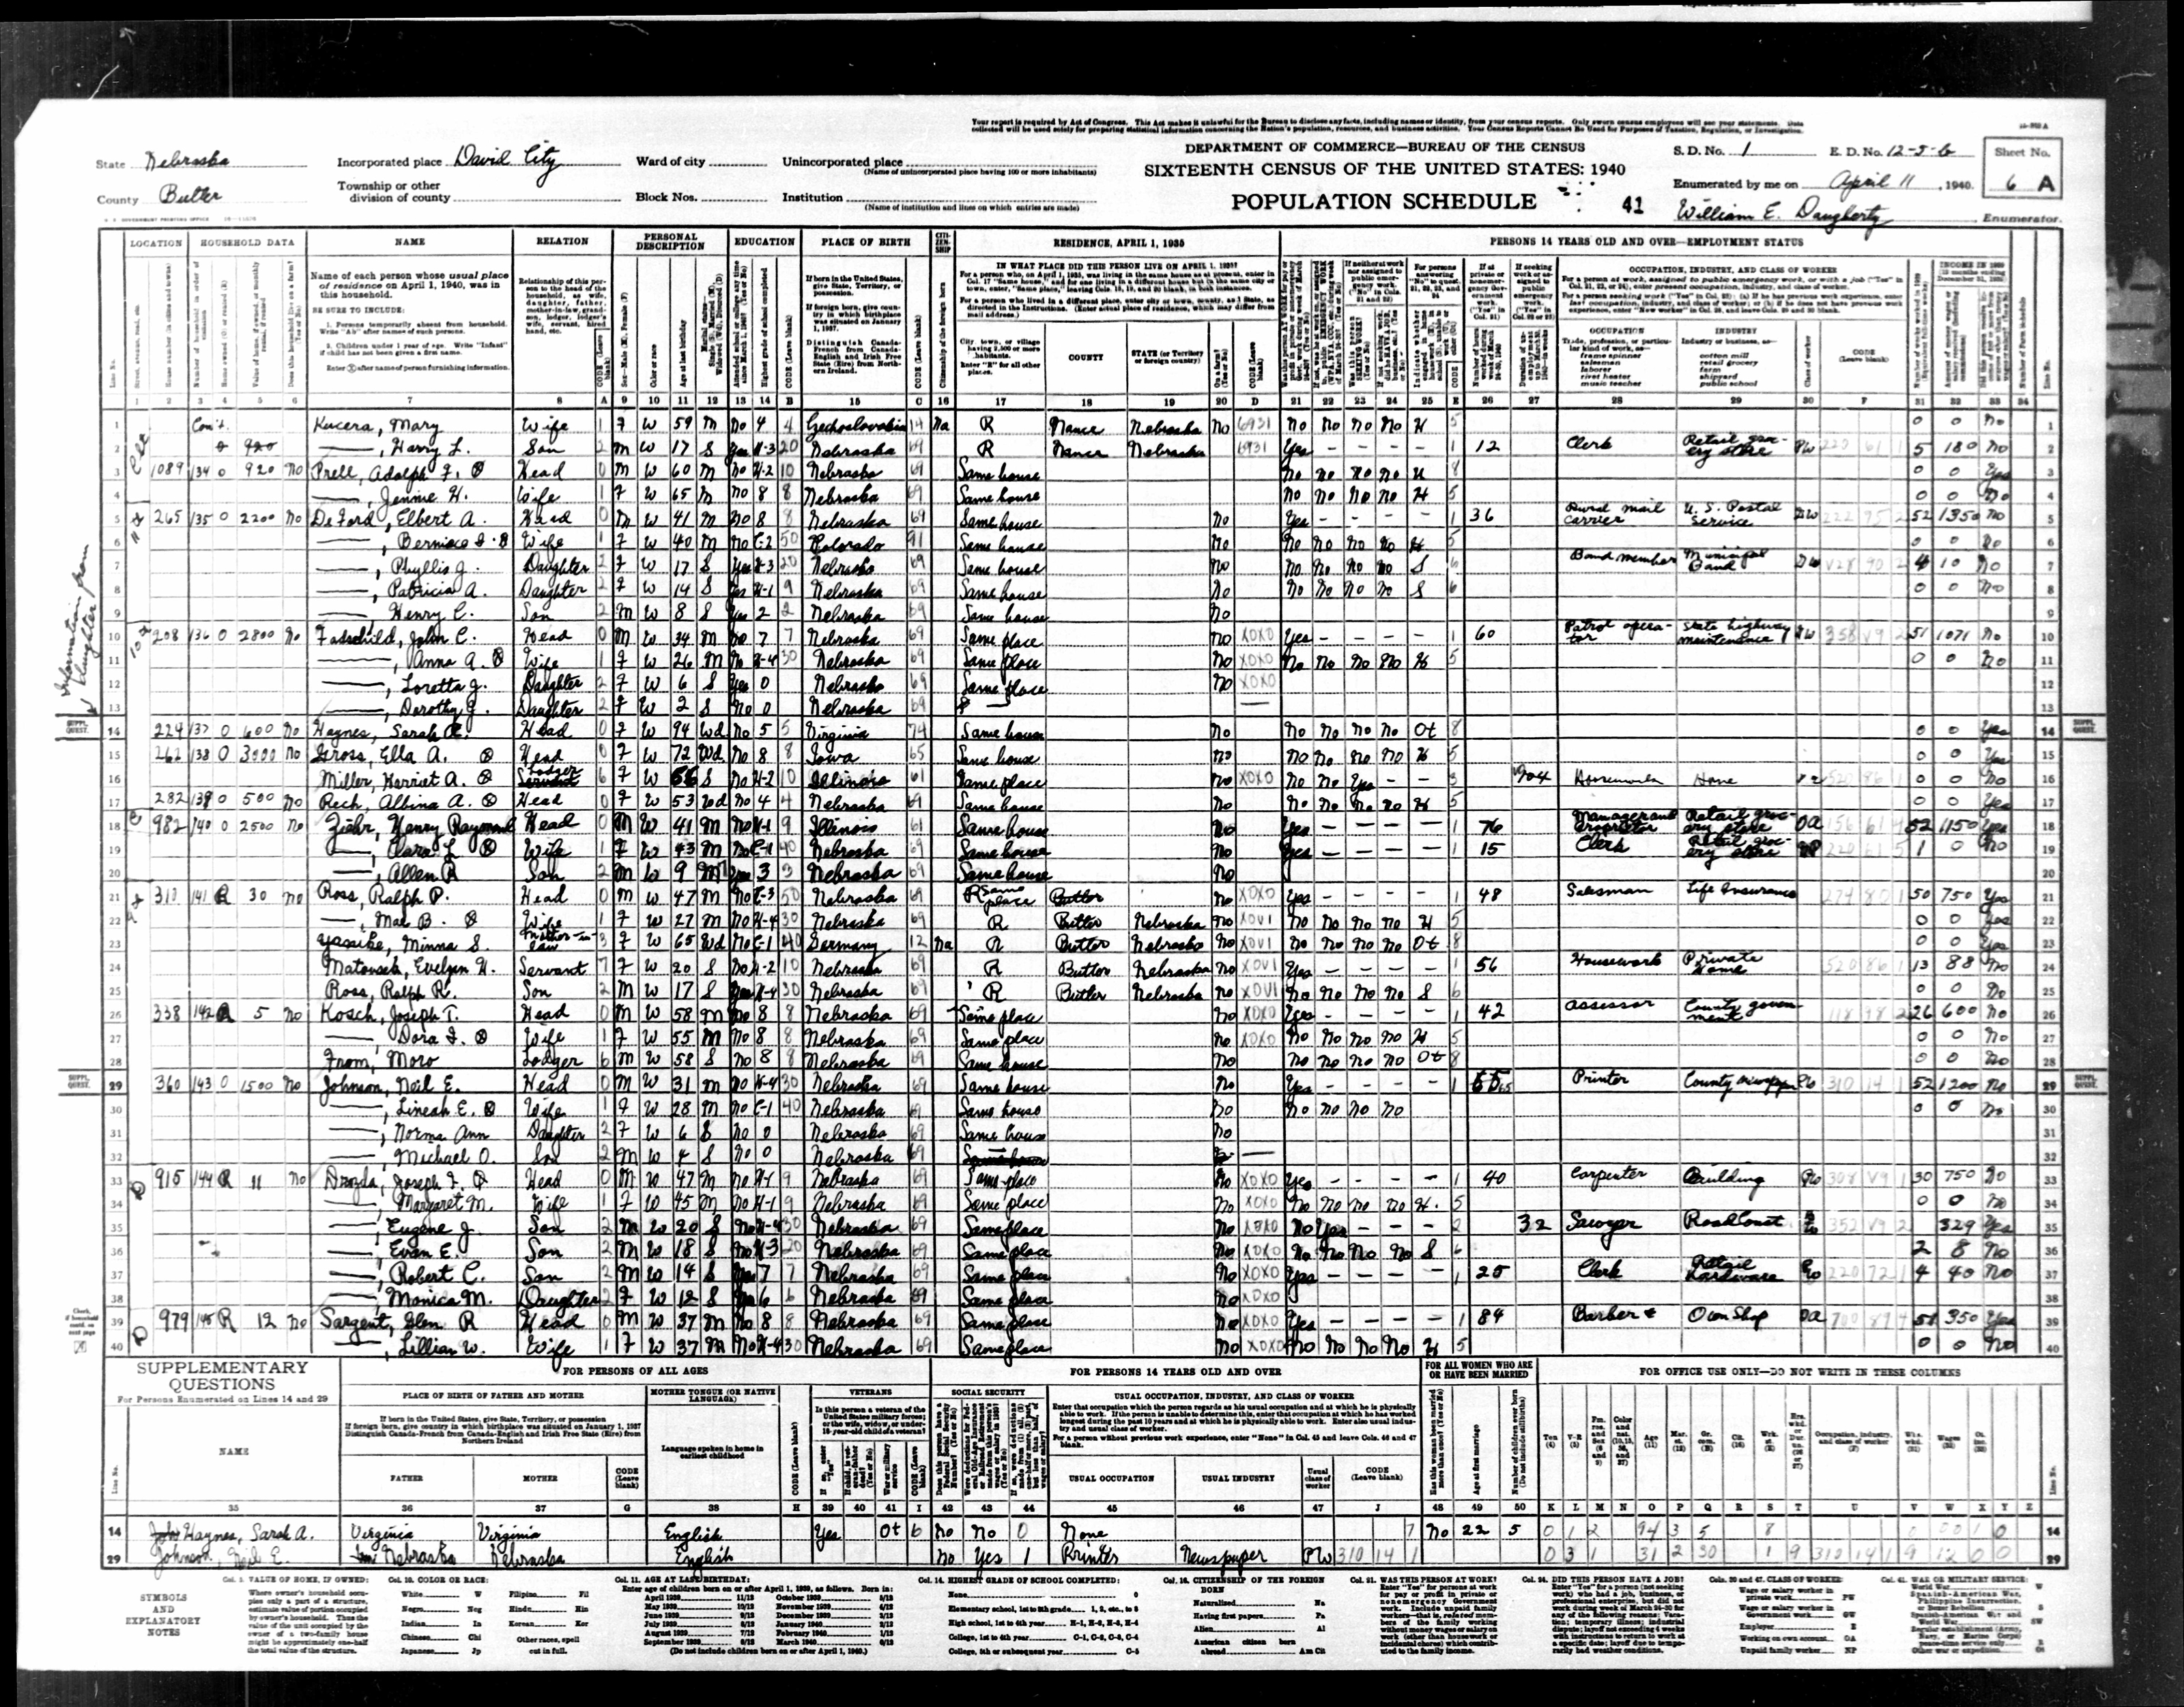 Glen Sargent - 1940 Census